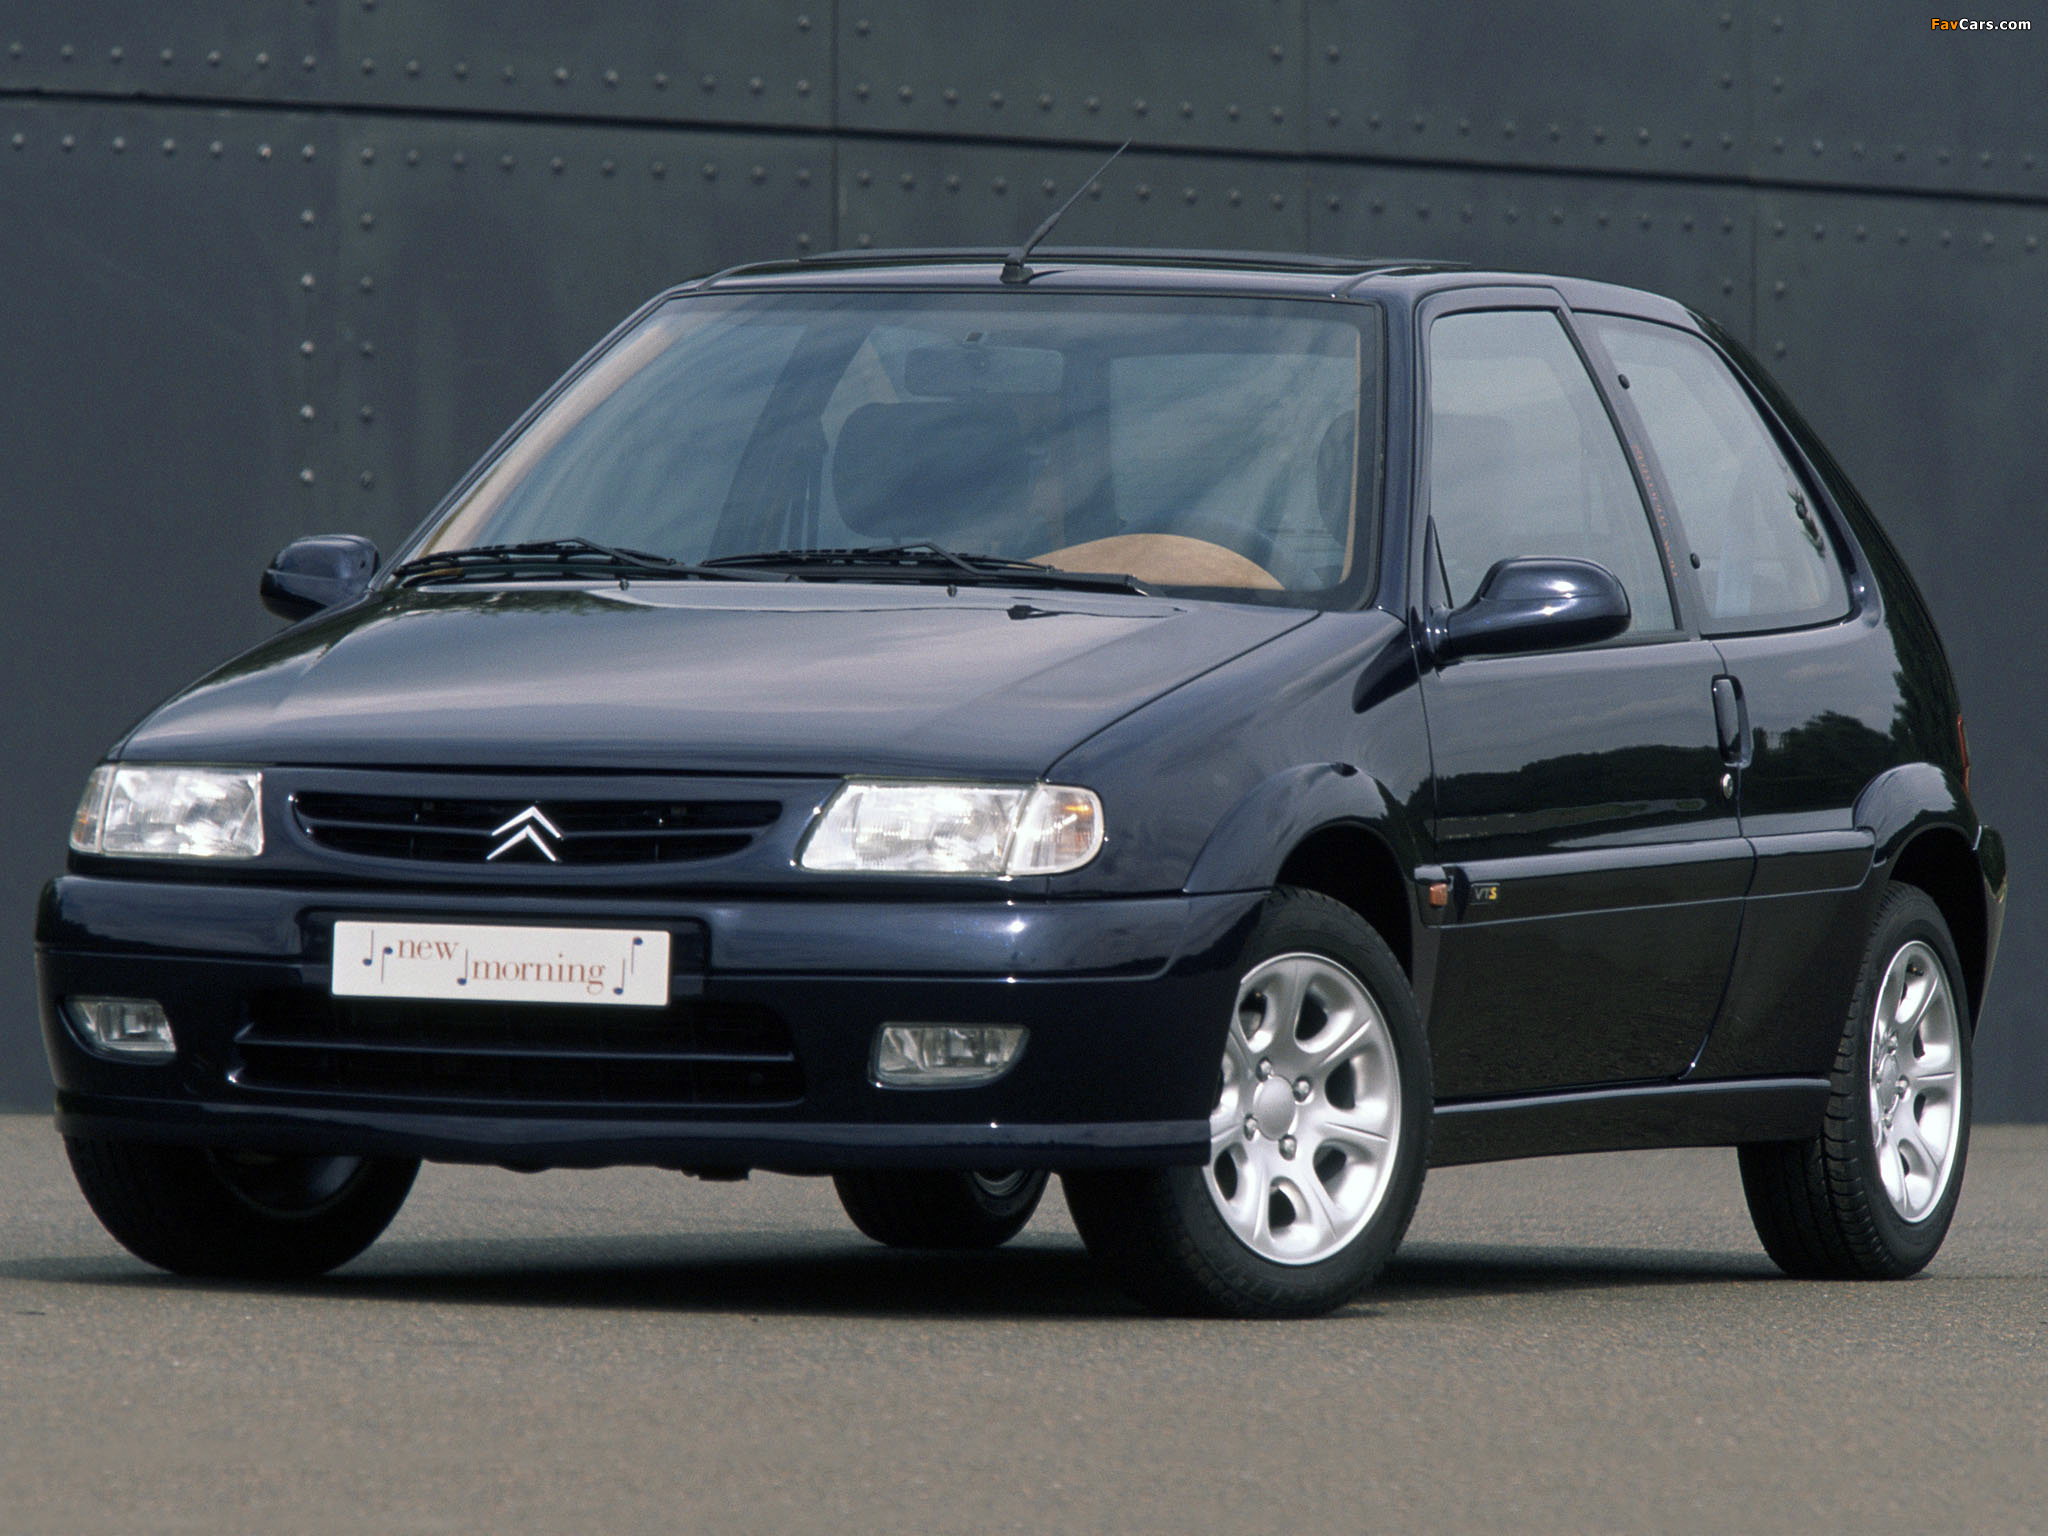 1998 citroen saxo photos informations articles. Black Bedroom Furniture Sets. Home Design Ideas